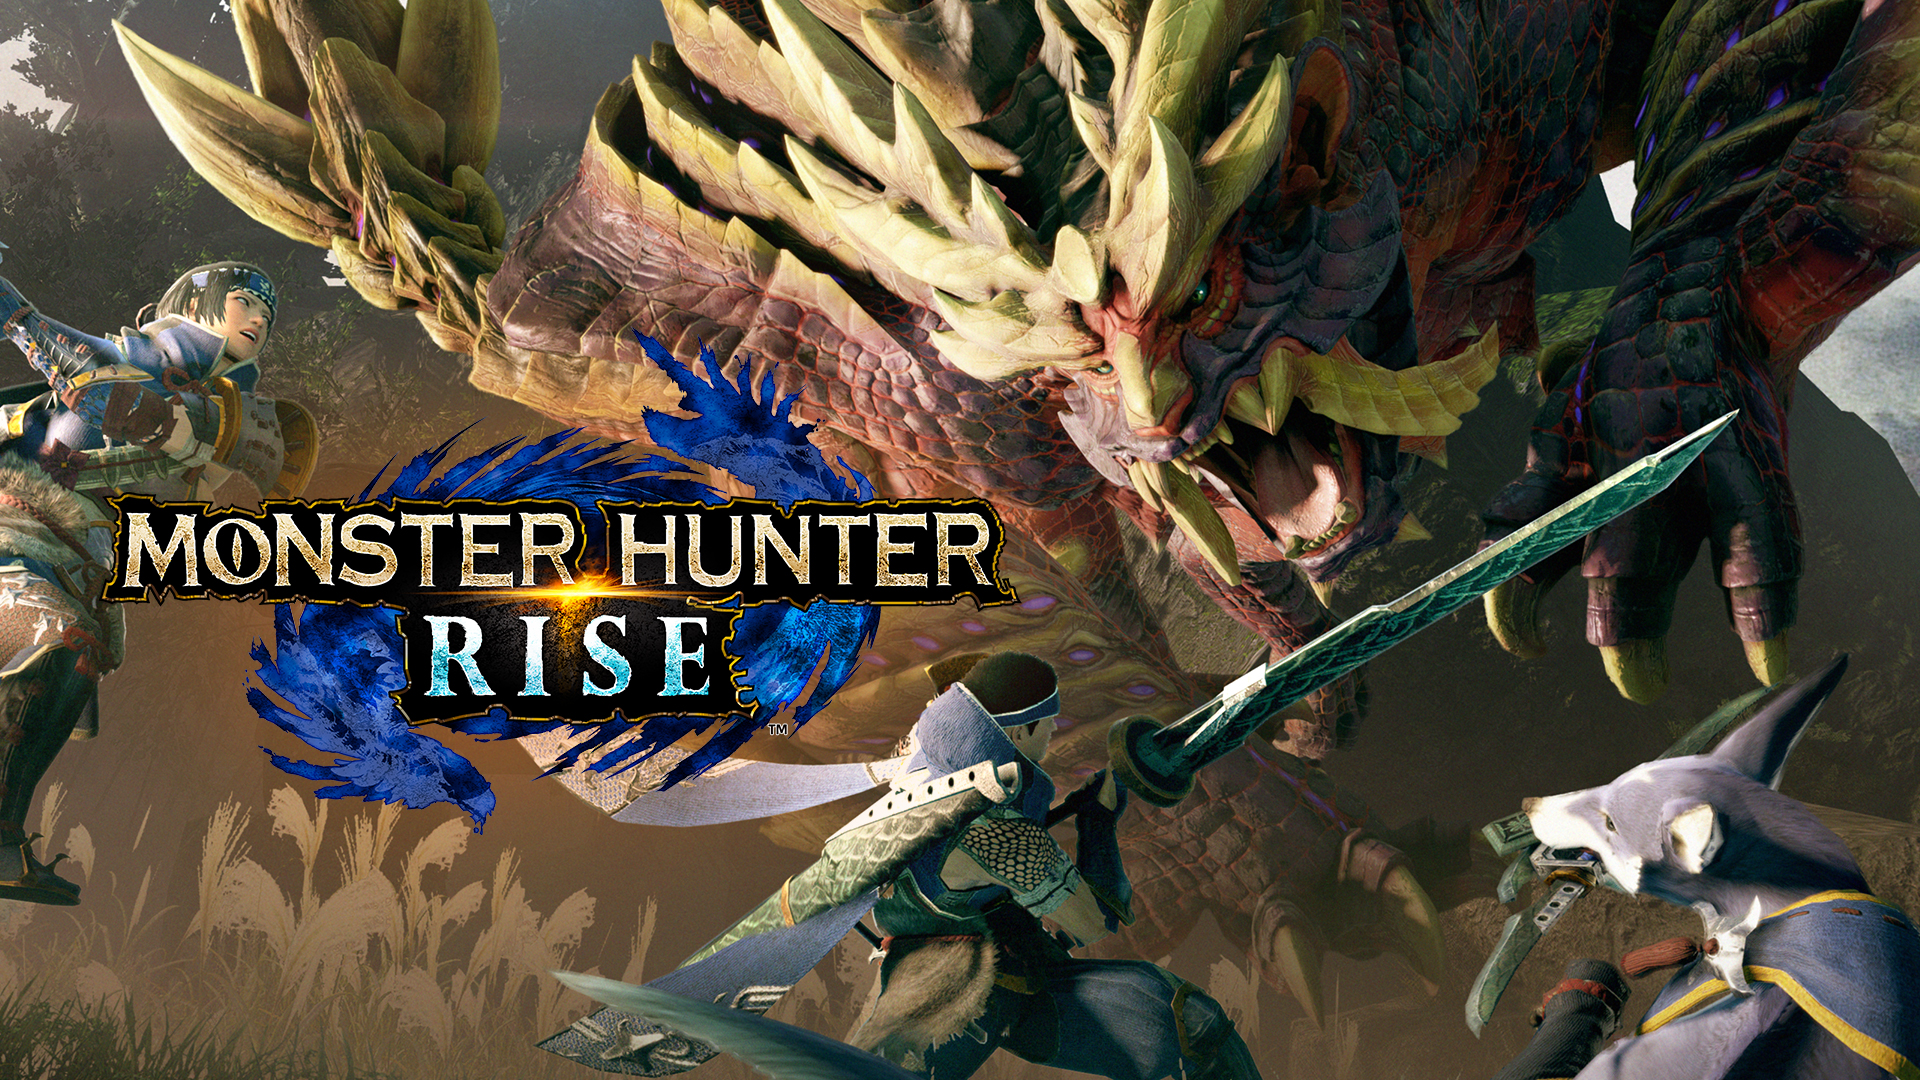 Monster Hunter Rise Released With Day 1 Patch 1.1.1 Update